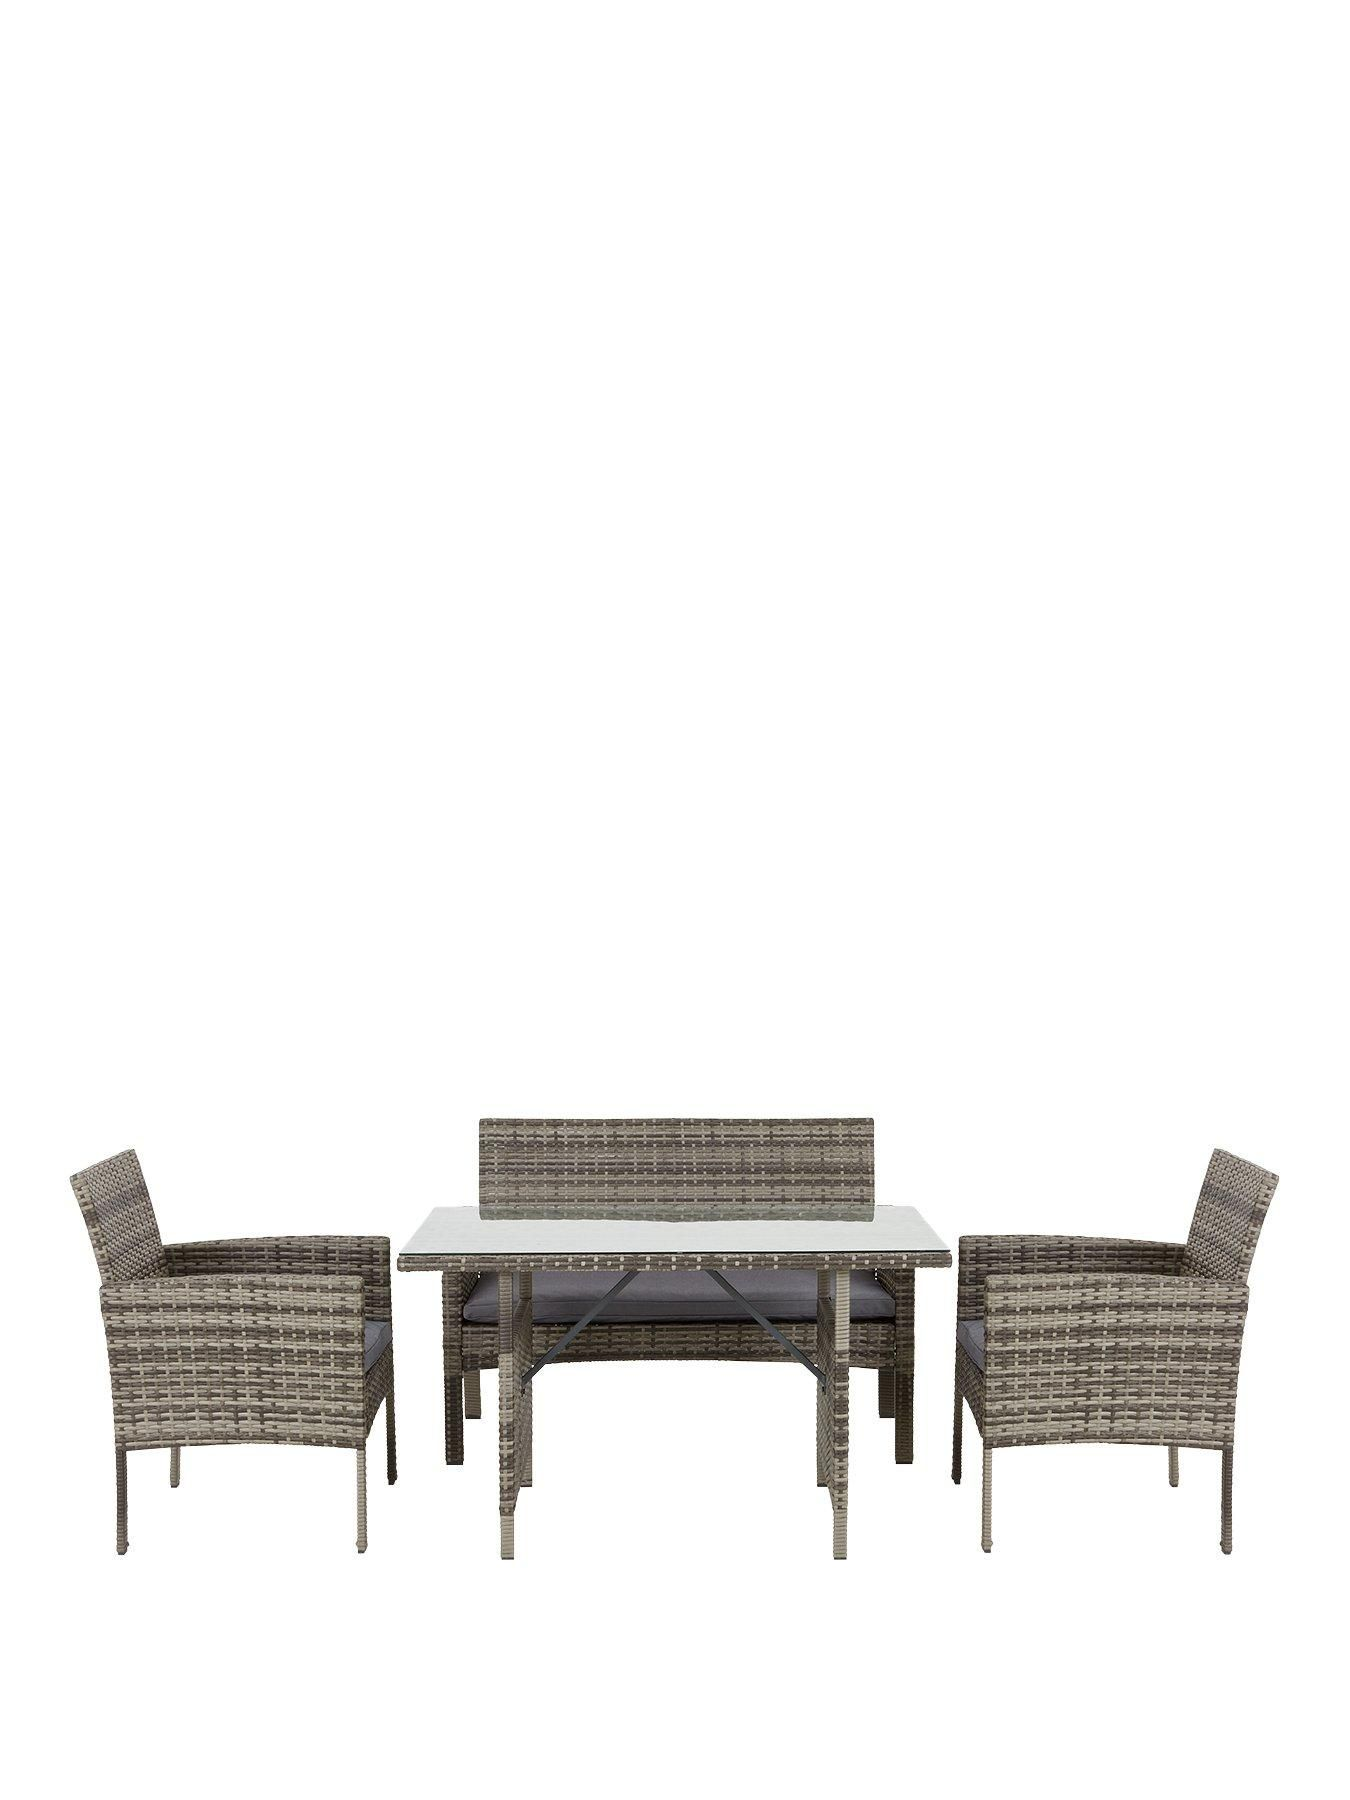 Hamilton Casual Dining Set Garden Furniture In Grey Products In 2019 Garden Furniture Furniture Modern Garden Furniture